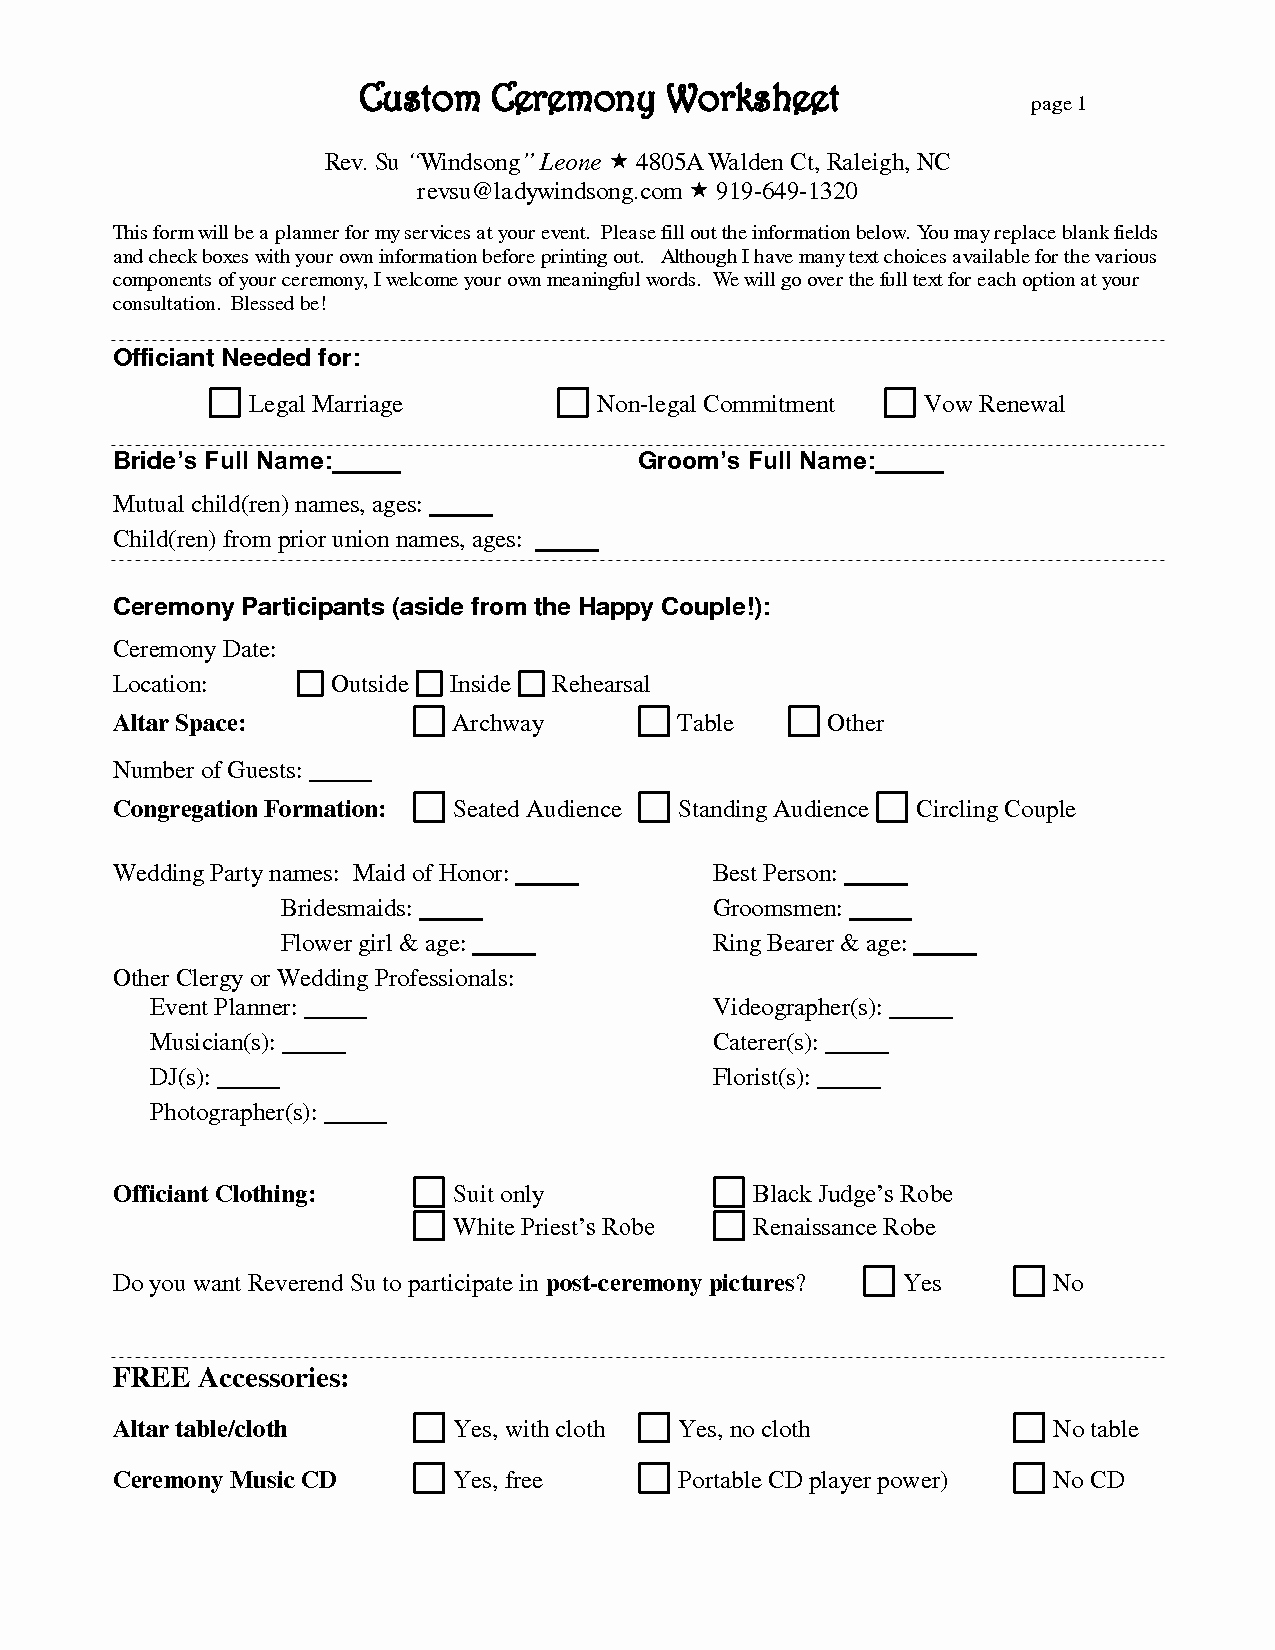 Wedding Coordinator Contract Inspirational Free Wedding Planner Contract Template